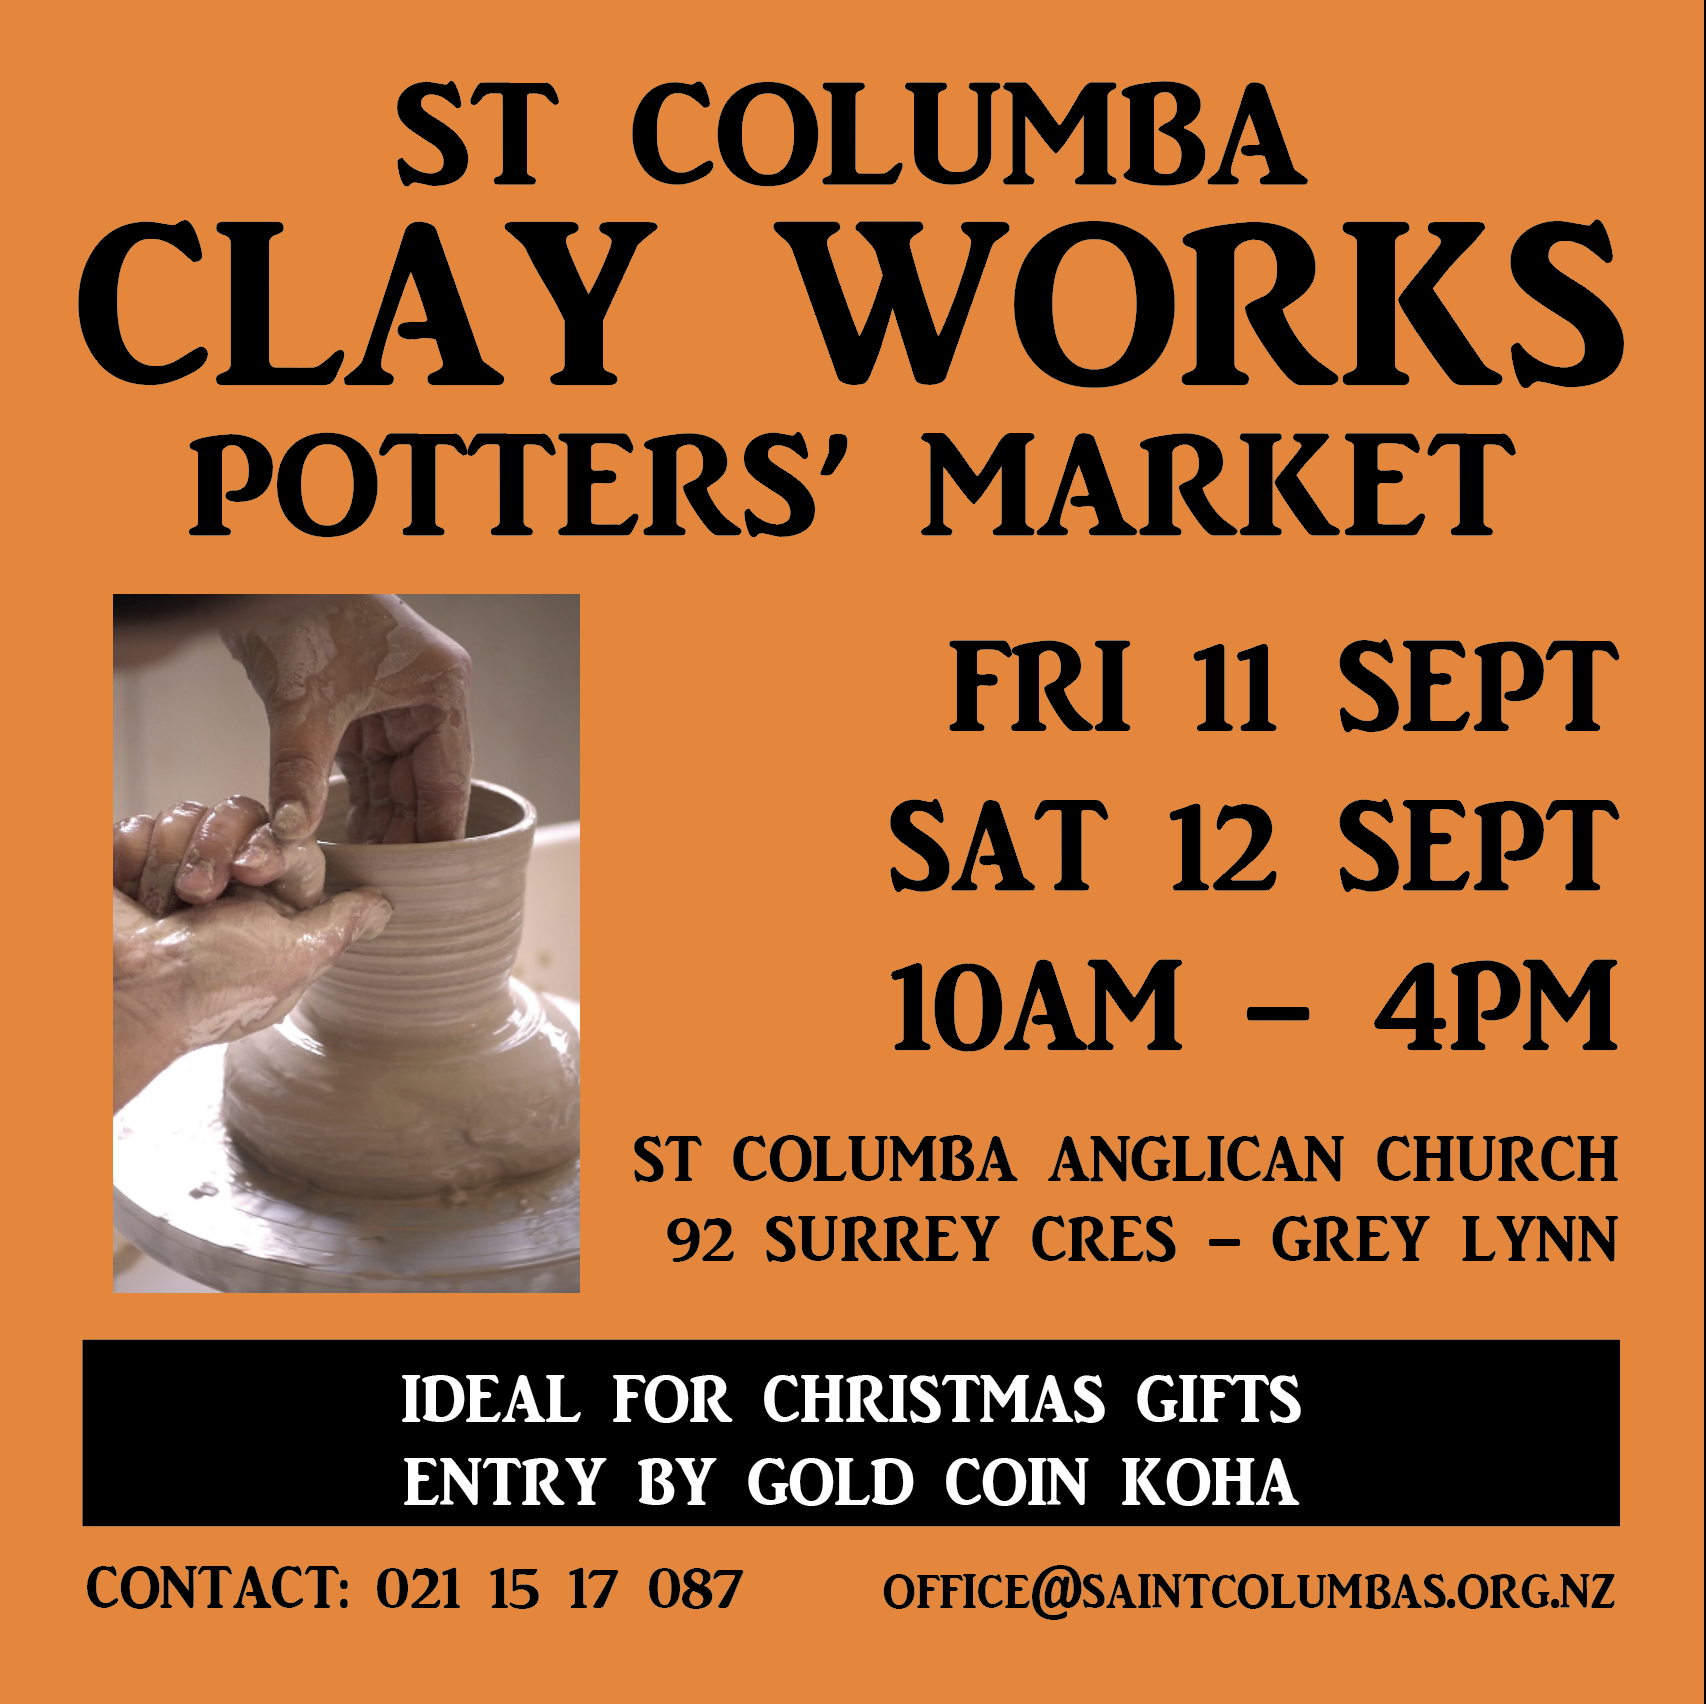 Clay Works Potters' Market 2020 – postponed to 30/31 October 2020 due to Covid-19